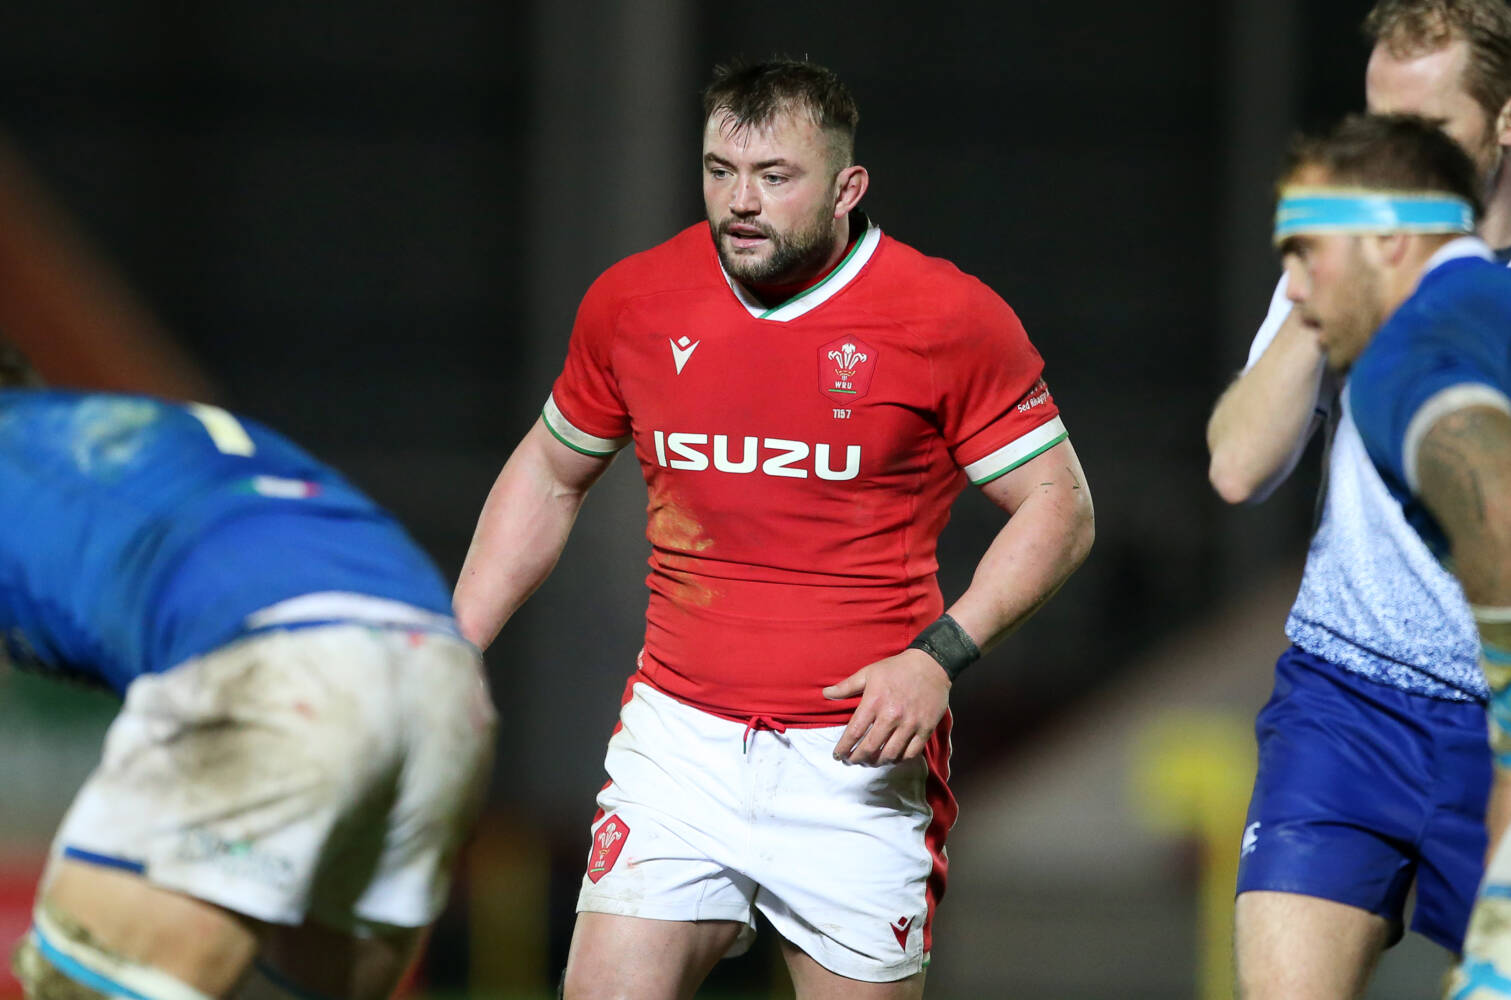 Parry signs on for more in Swansea